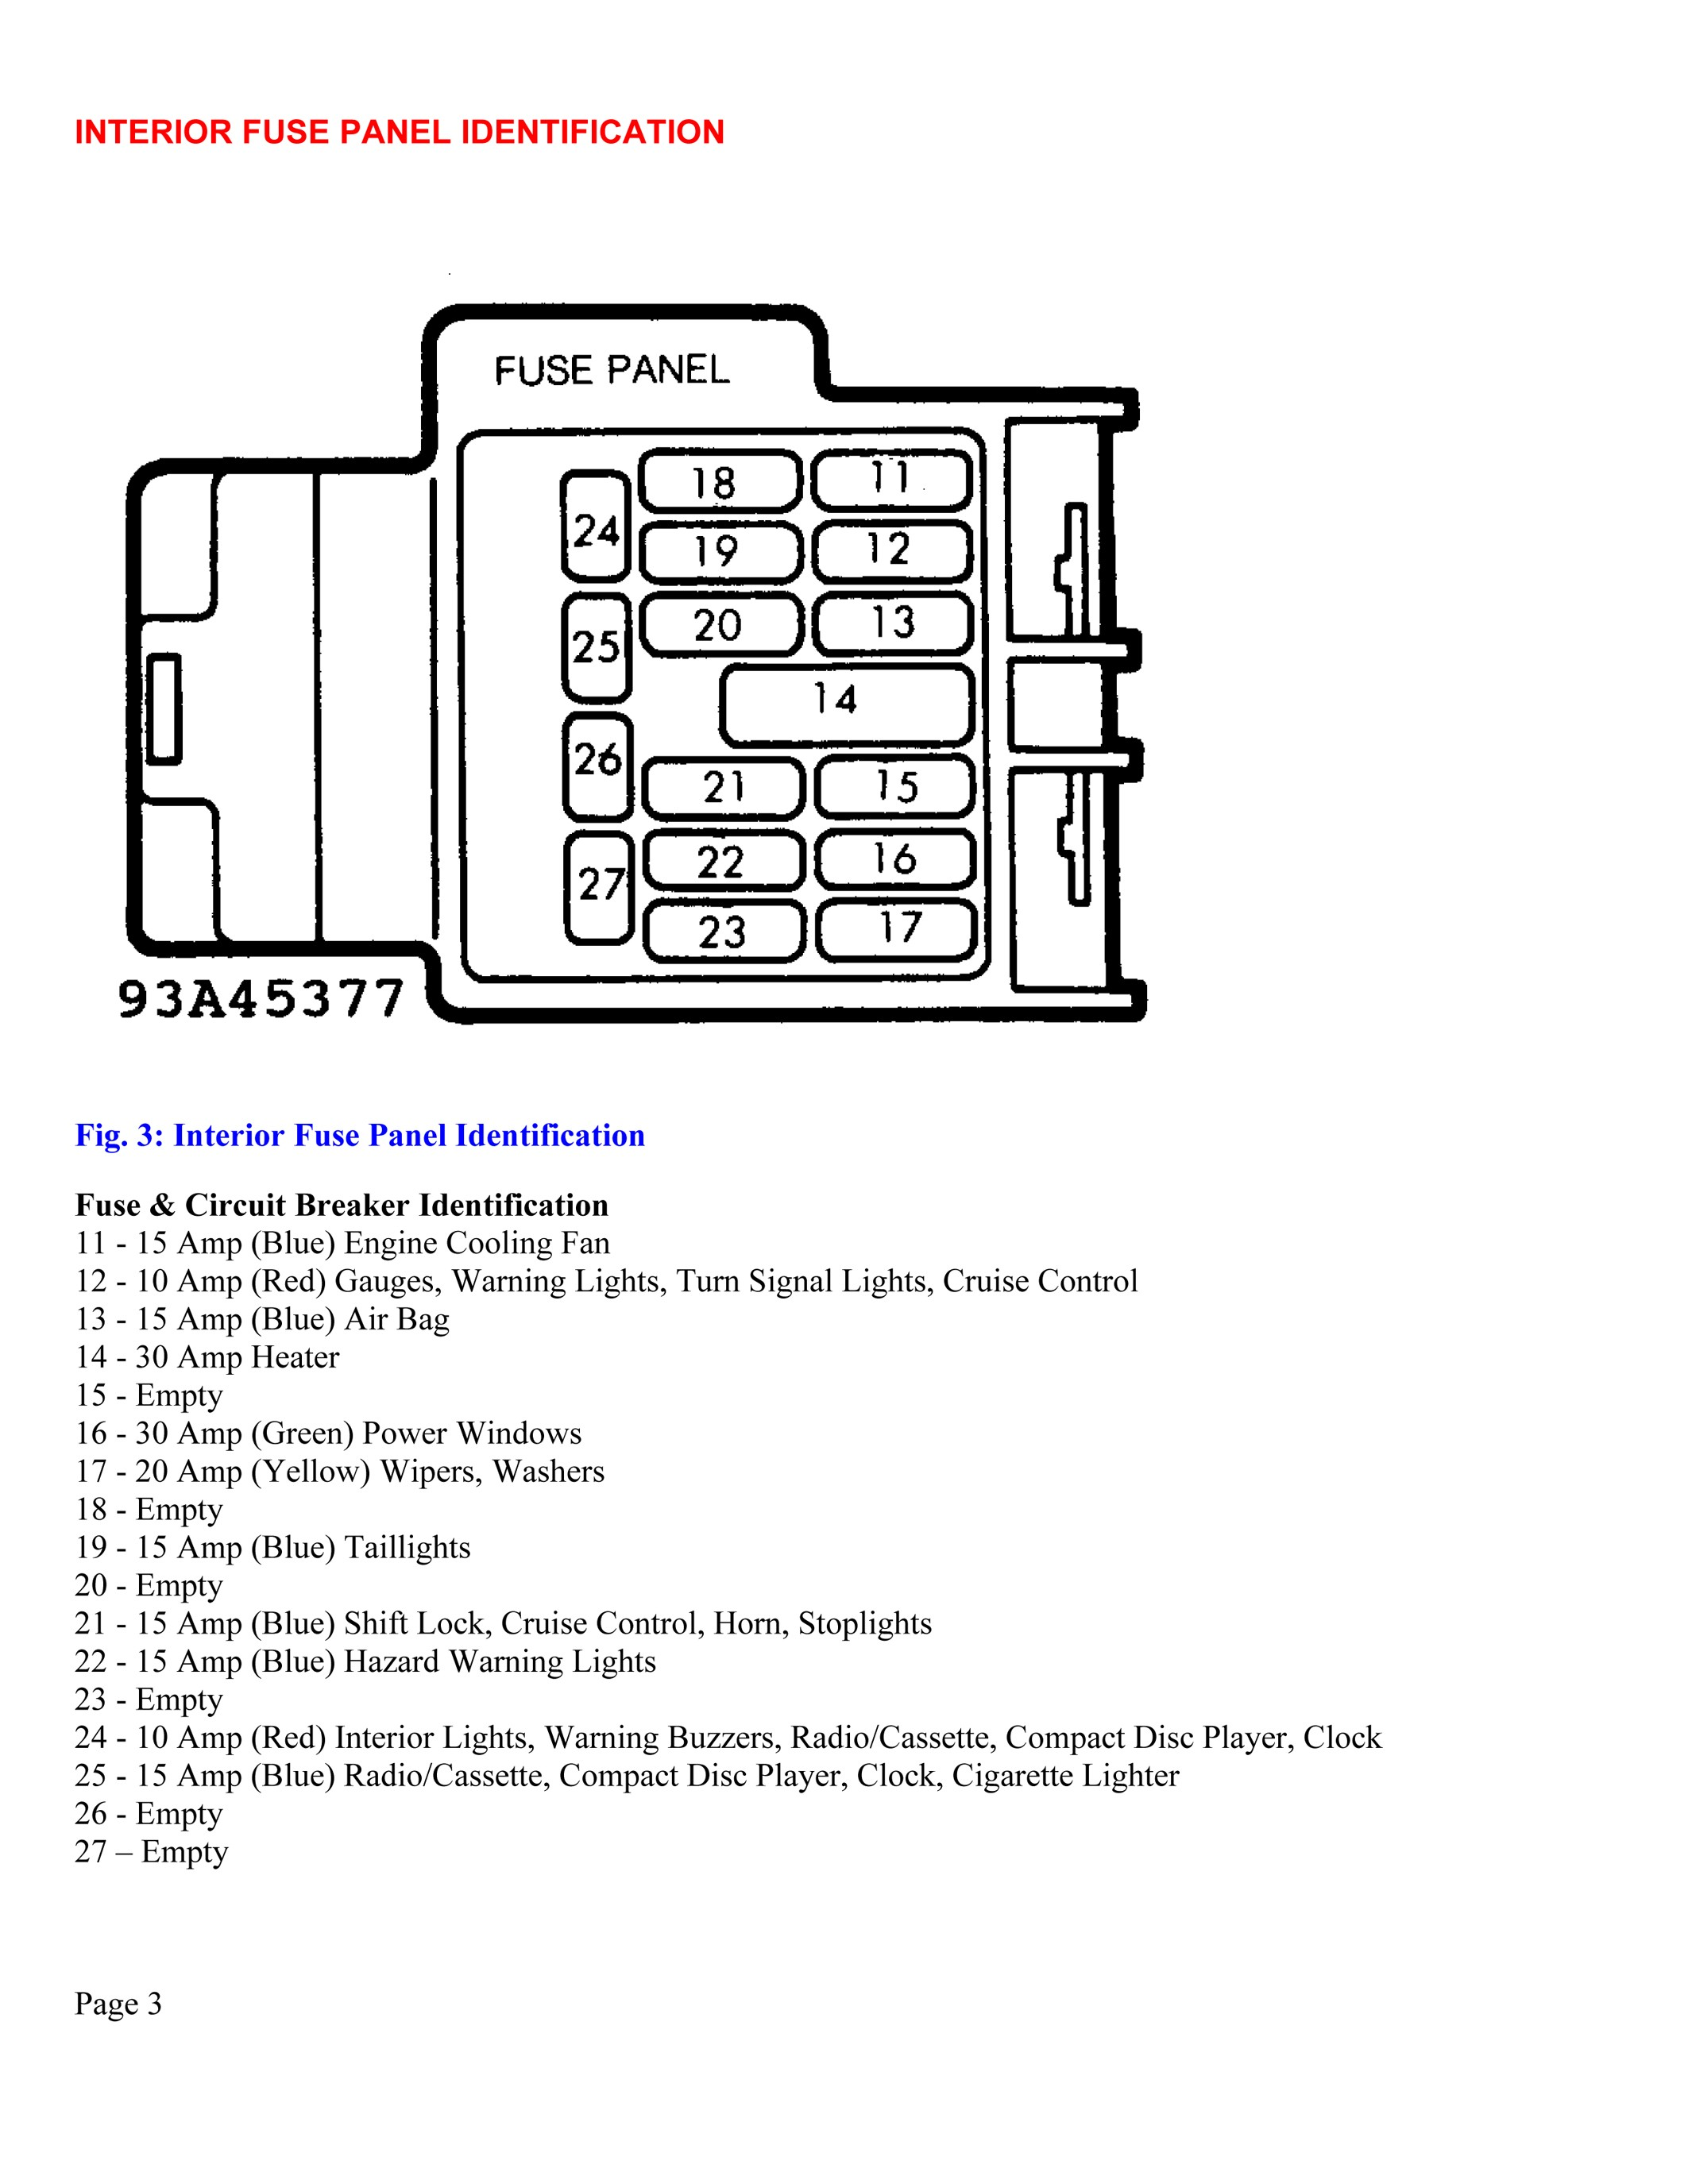 1995 Mazda 929 Fuse Box Diagram ~ Wiring Diagram Portal ~ \u2022 Mazda 5  Fuse Box Diagram 1997 Mazda Mpv Fuse Box Diagram